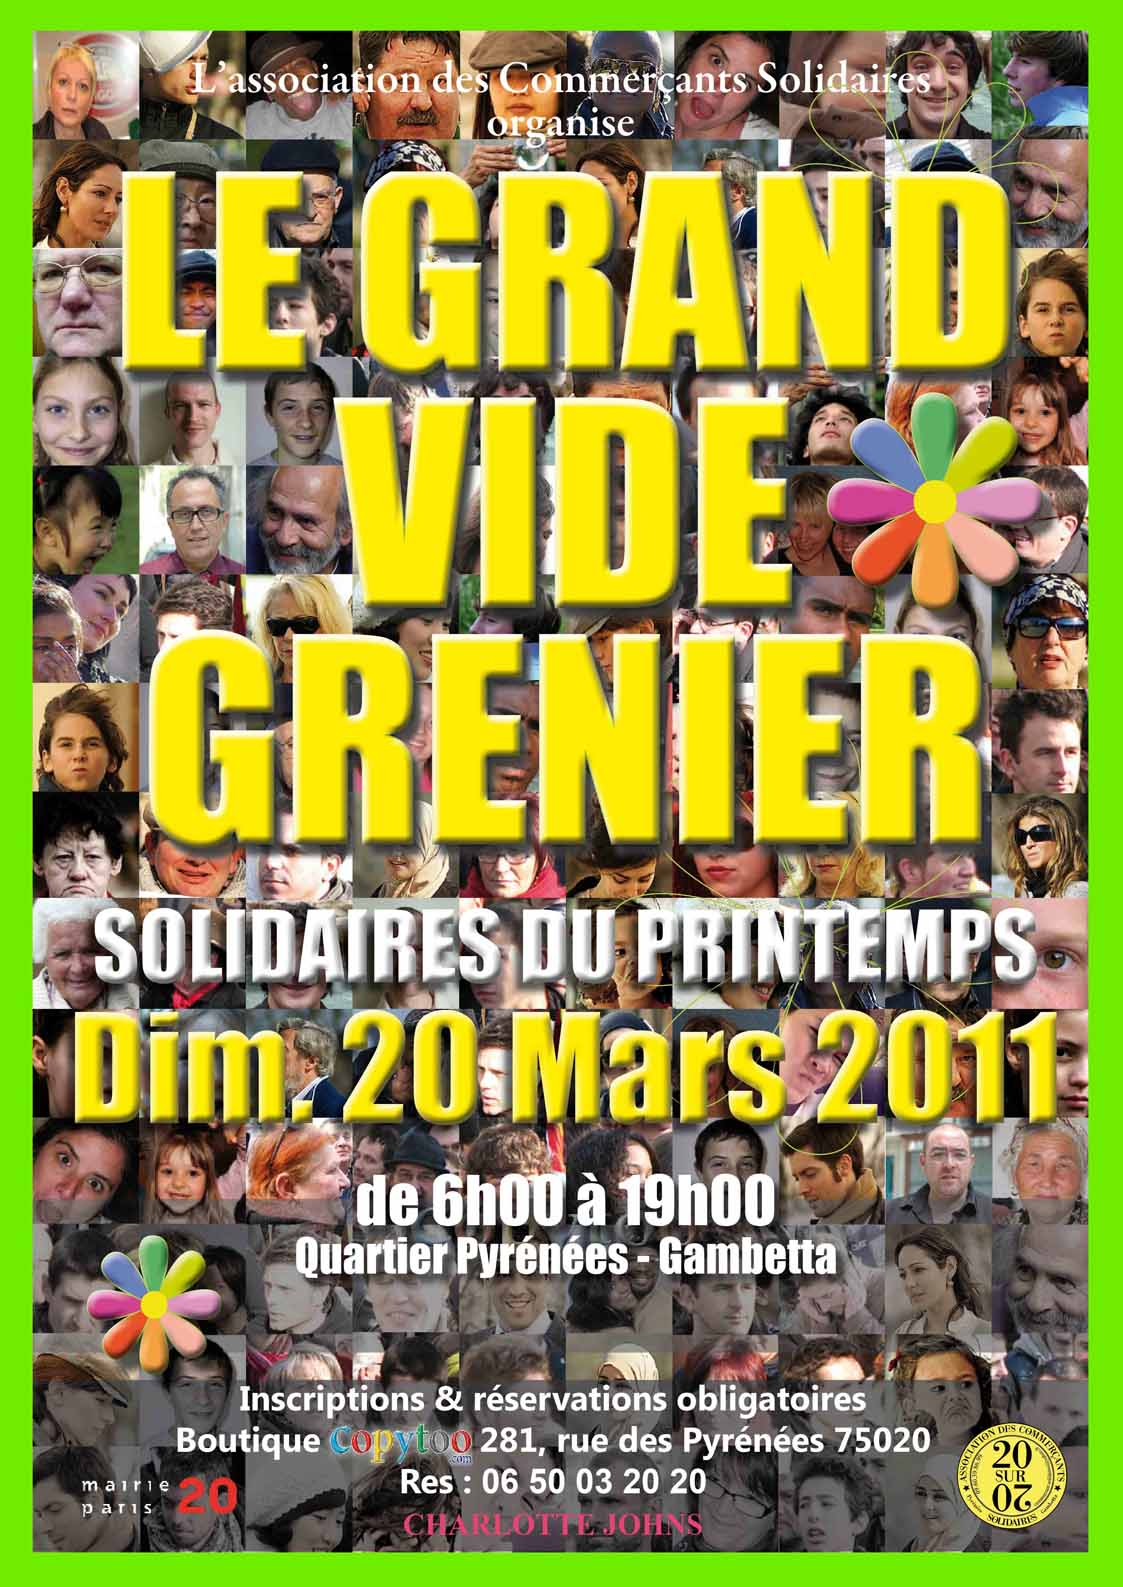 Vide Grenier Paris Ile De France Grand Vide Grenier Solidaire Du Printemps à Paris Vide